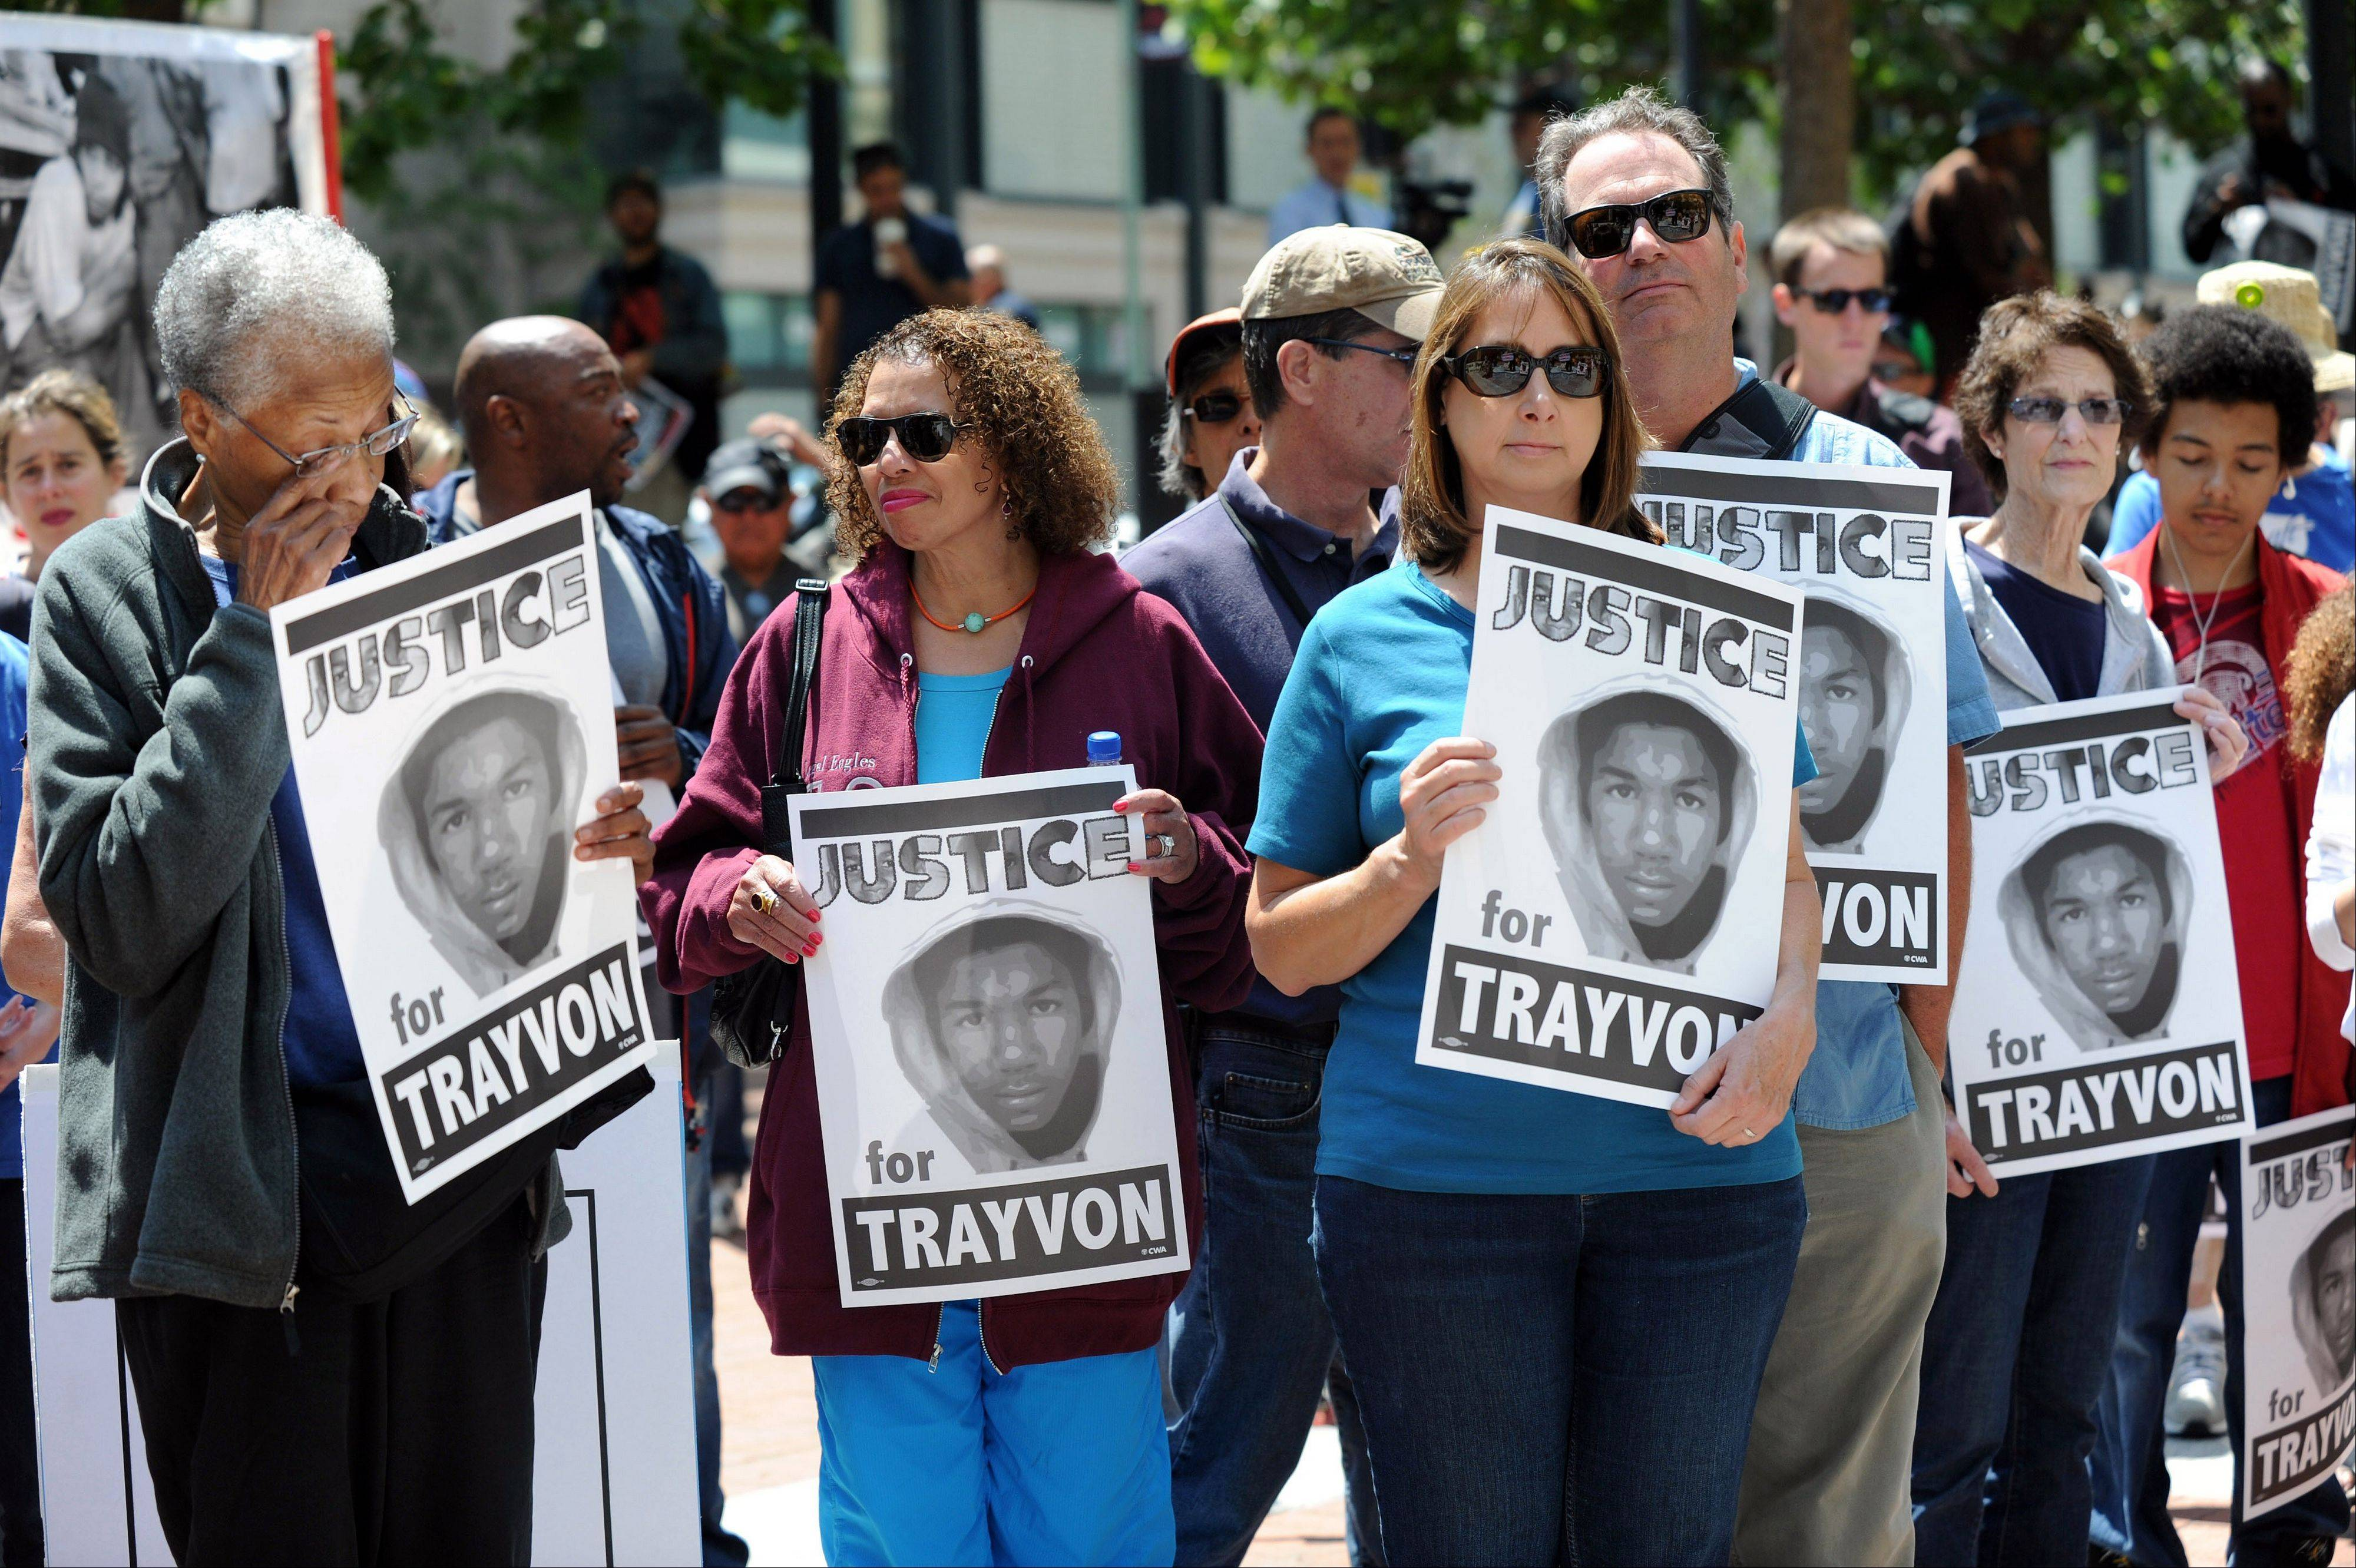 "People gather at the Ronald V. Dellums Federal Building in Oakland, Calif. on Saturday, July 20, 2013. The Rev. Al Sharpton's National Action Network organized ""Justice for Trayvon"" rallies nationwide to press for federal civil rights charges against George Zimmerman, who was found not guilty in the shooting death of unarmed teenager Trayvon Martin."